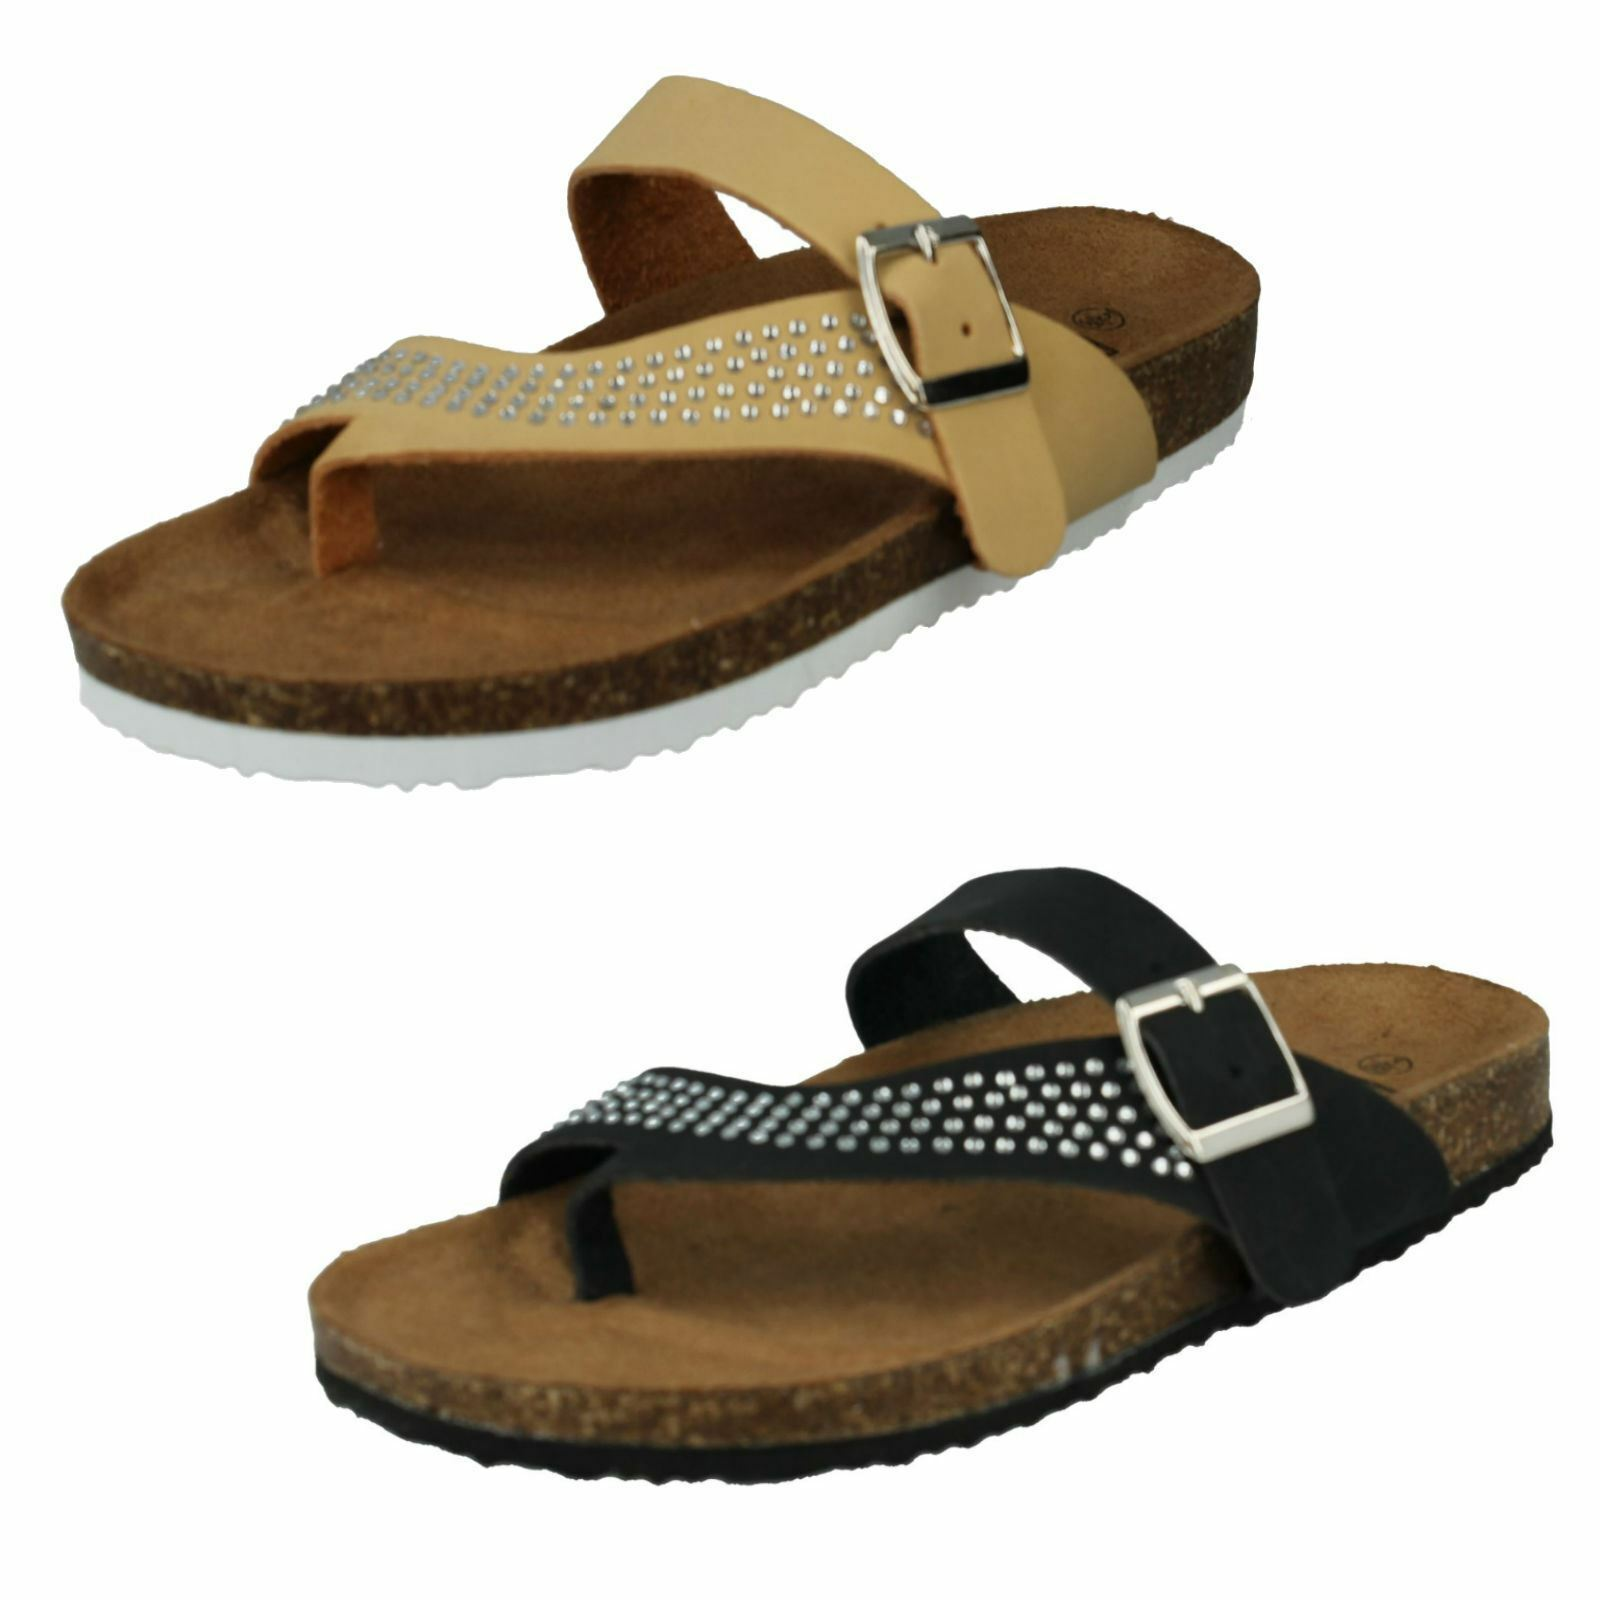 SALE Ladies F00046 Earth Toe Post Sandals By Down to Earth F00046 Retail Price 2553aa